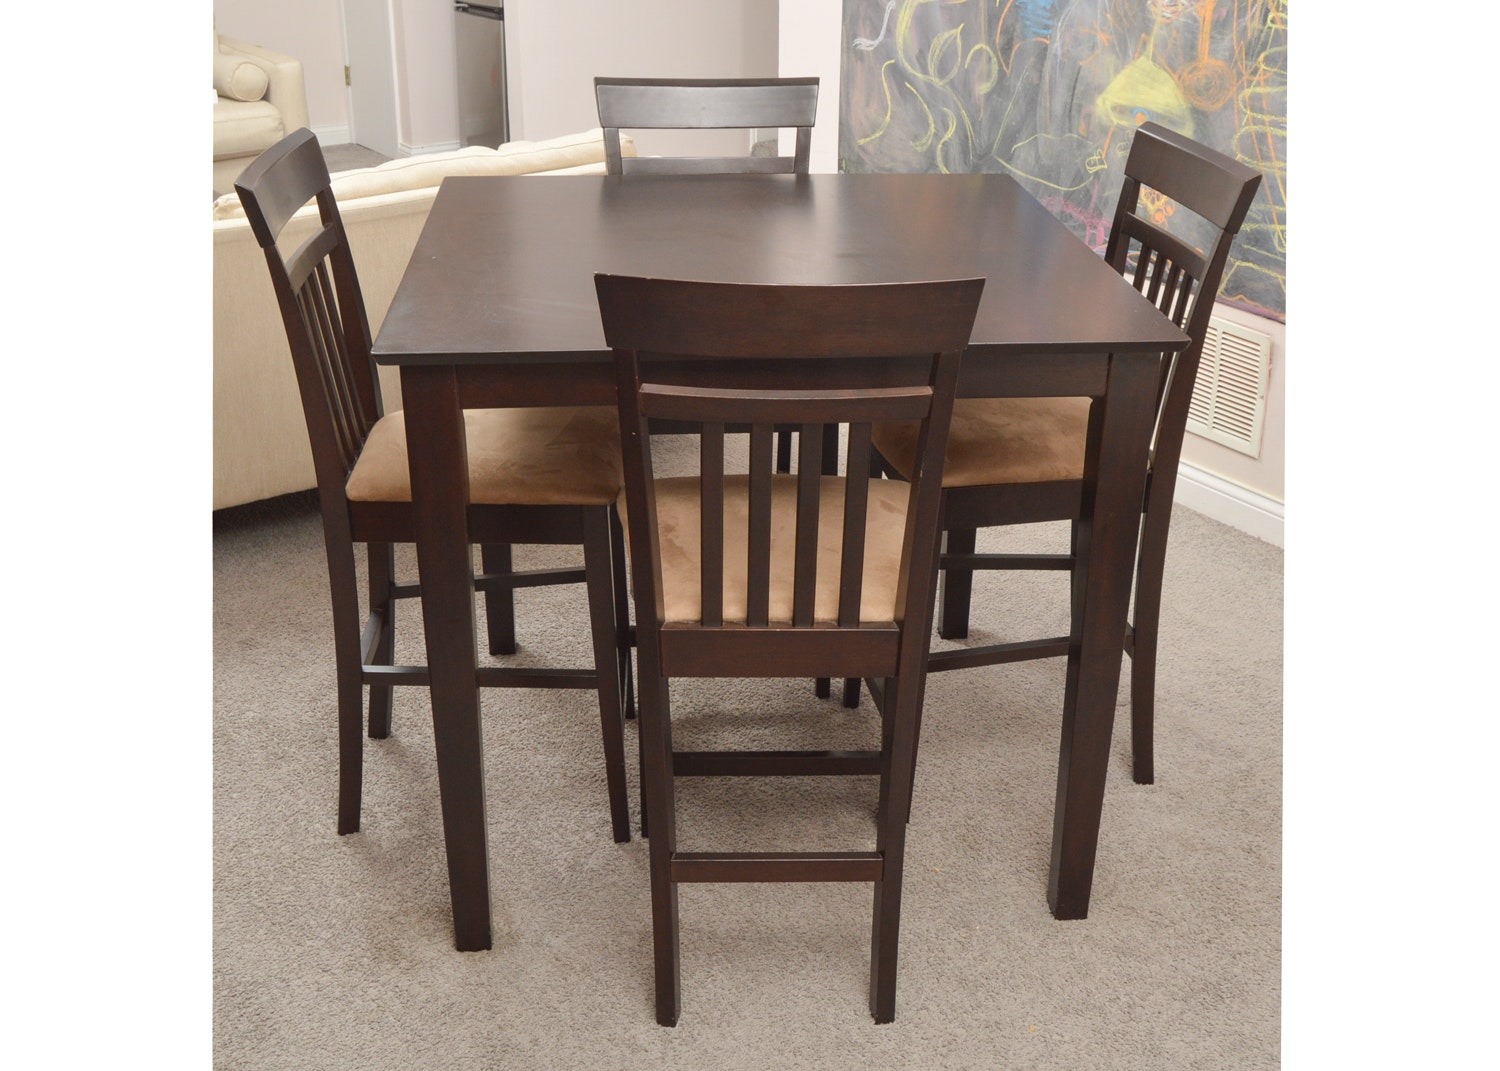 Parsons Style Table with Four Slat Back Chairs